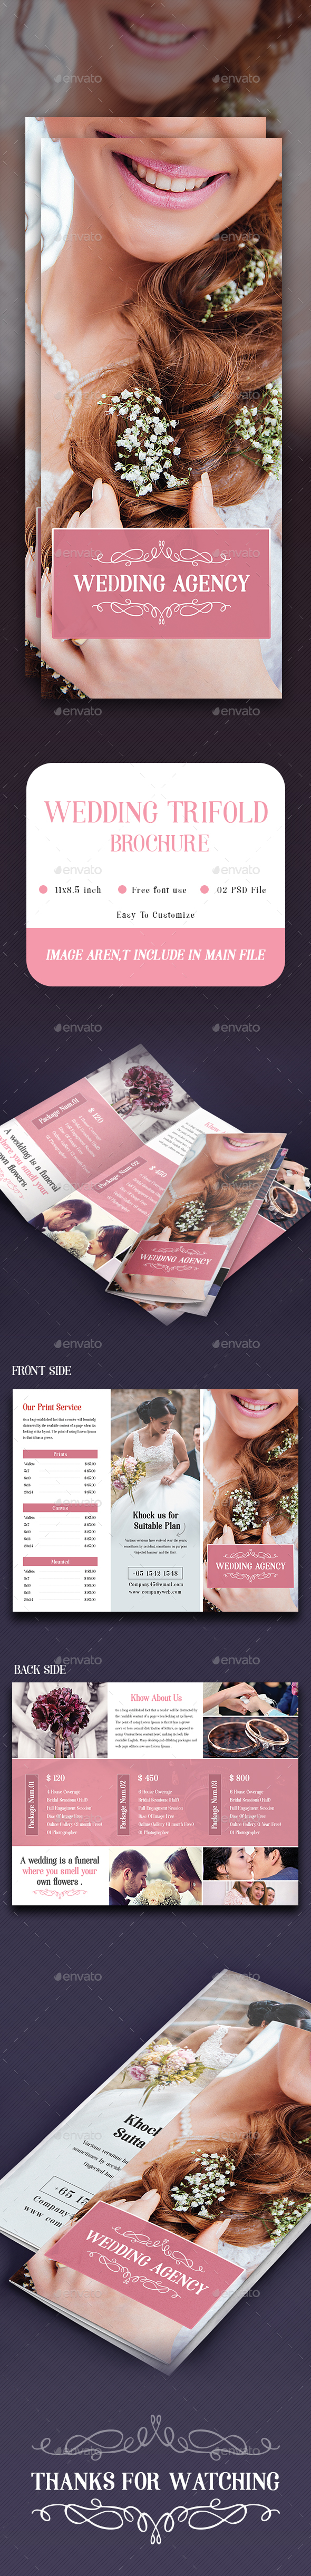 Wedding Photography Trifold - Brochures Print Templates